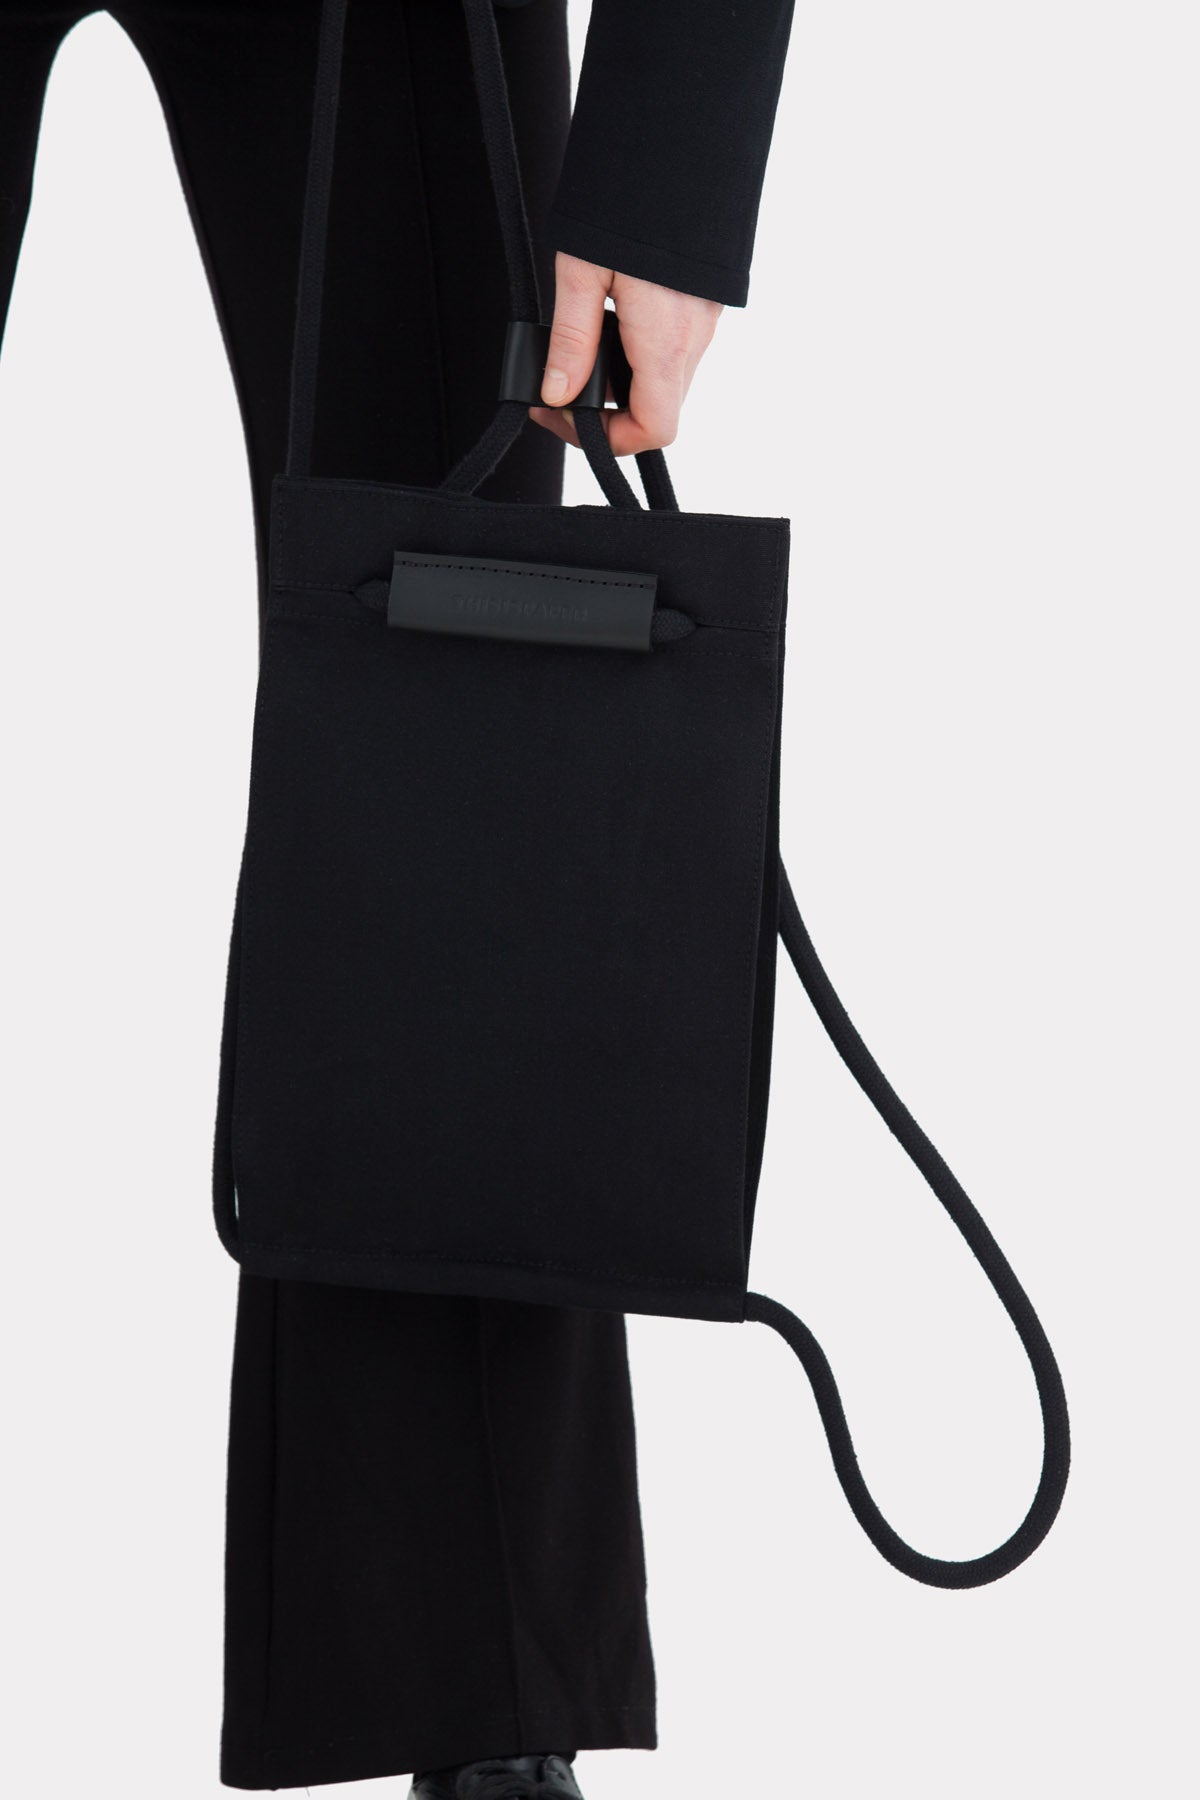 Pocket Bag Small Solid Black (Sample)